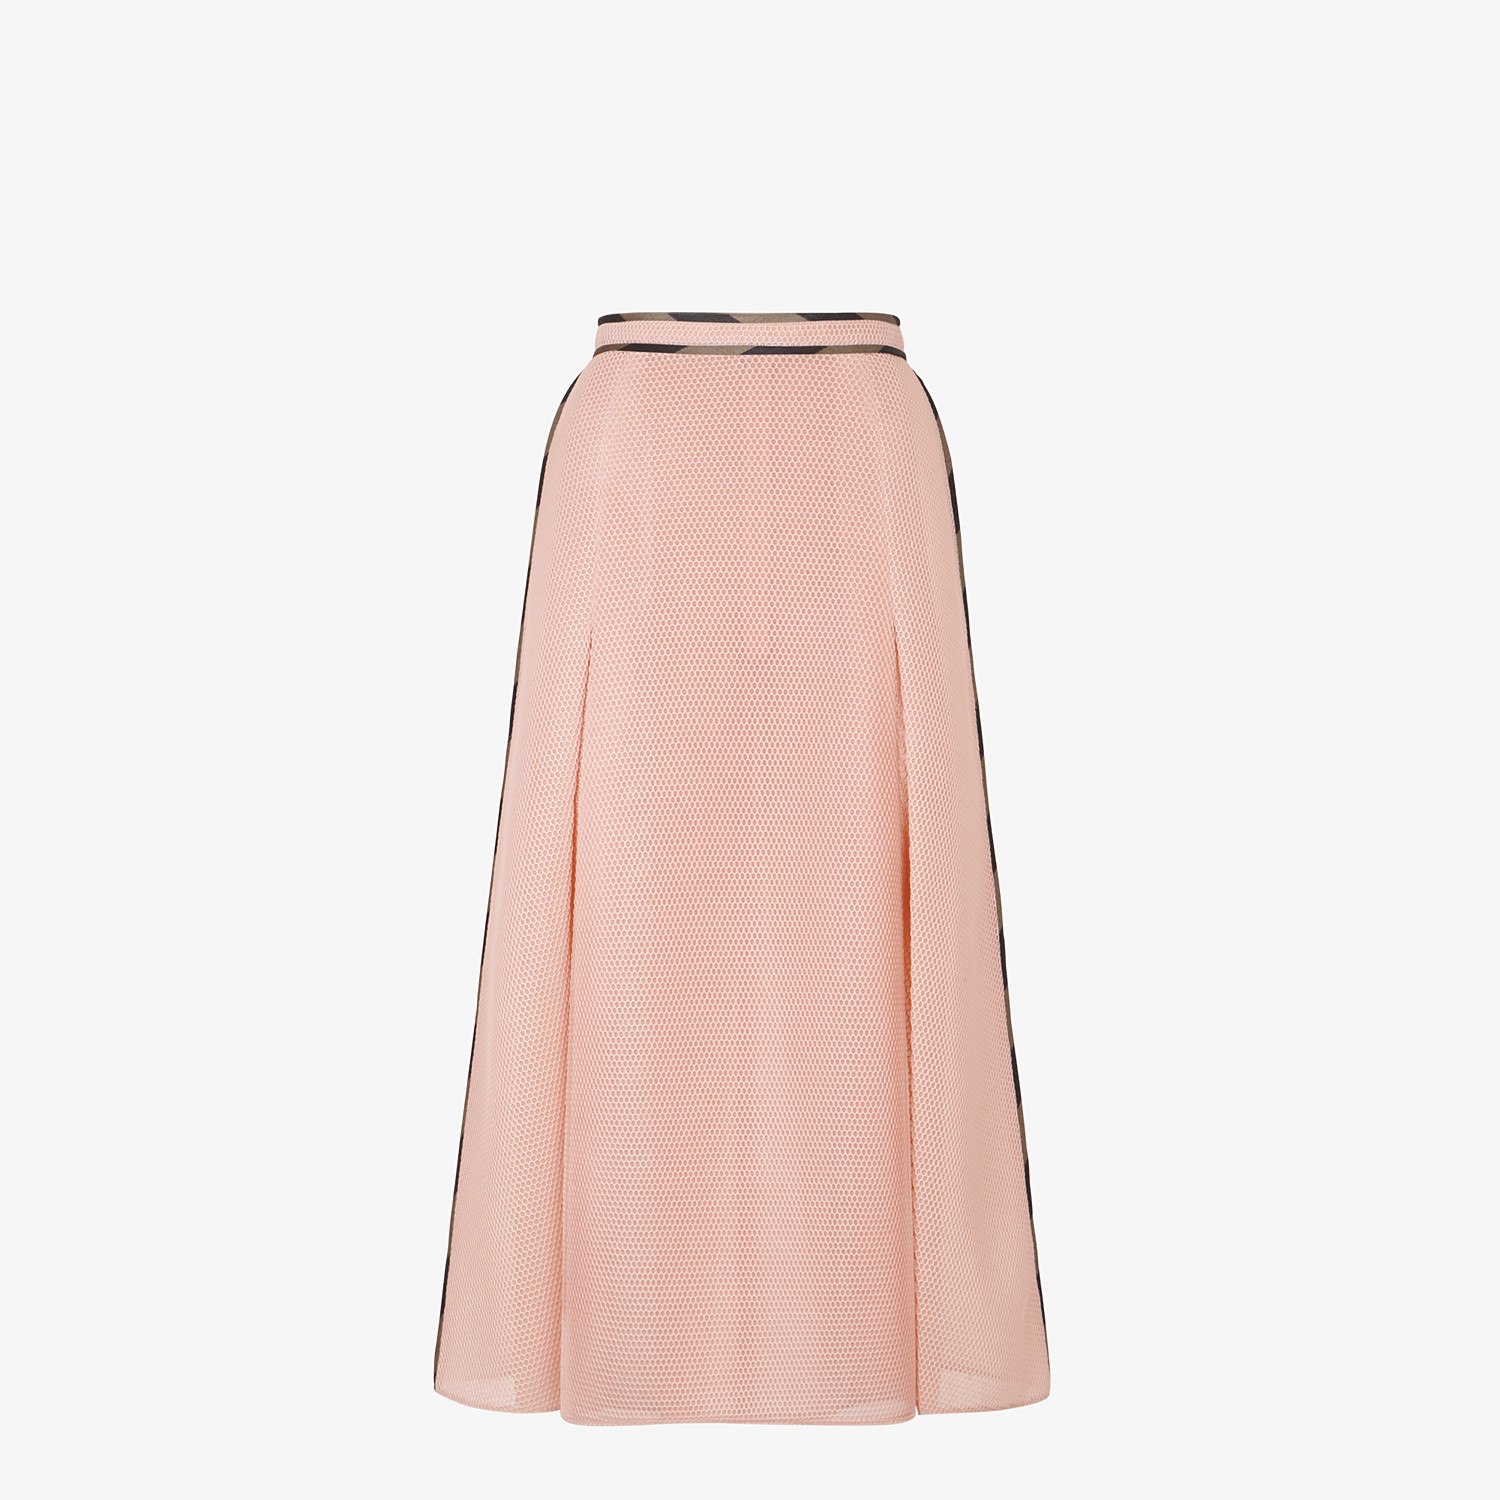 FENDI SKIRT - Skirt in pink tech mesh - view 1 detail